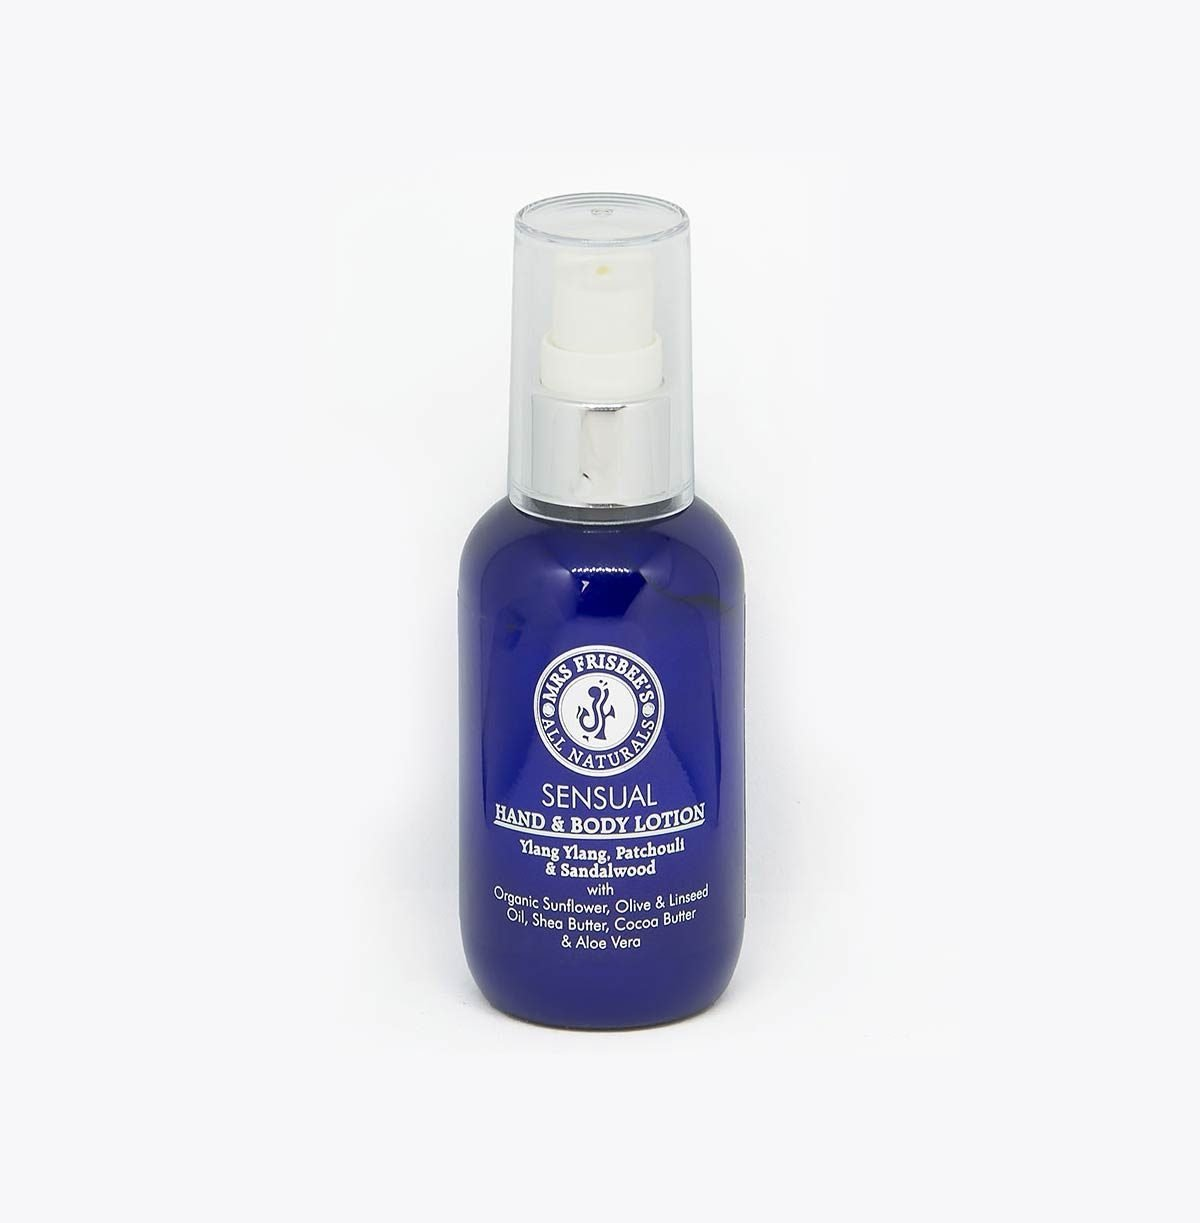 Sensual Body Lotion with Ylang Ylang, Patchouli and Sandalwood essential oils.